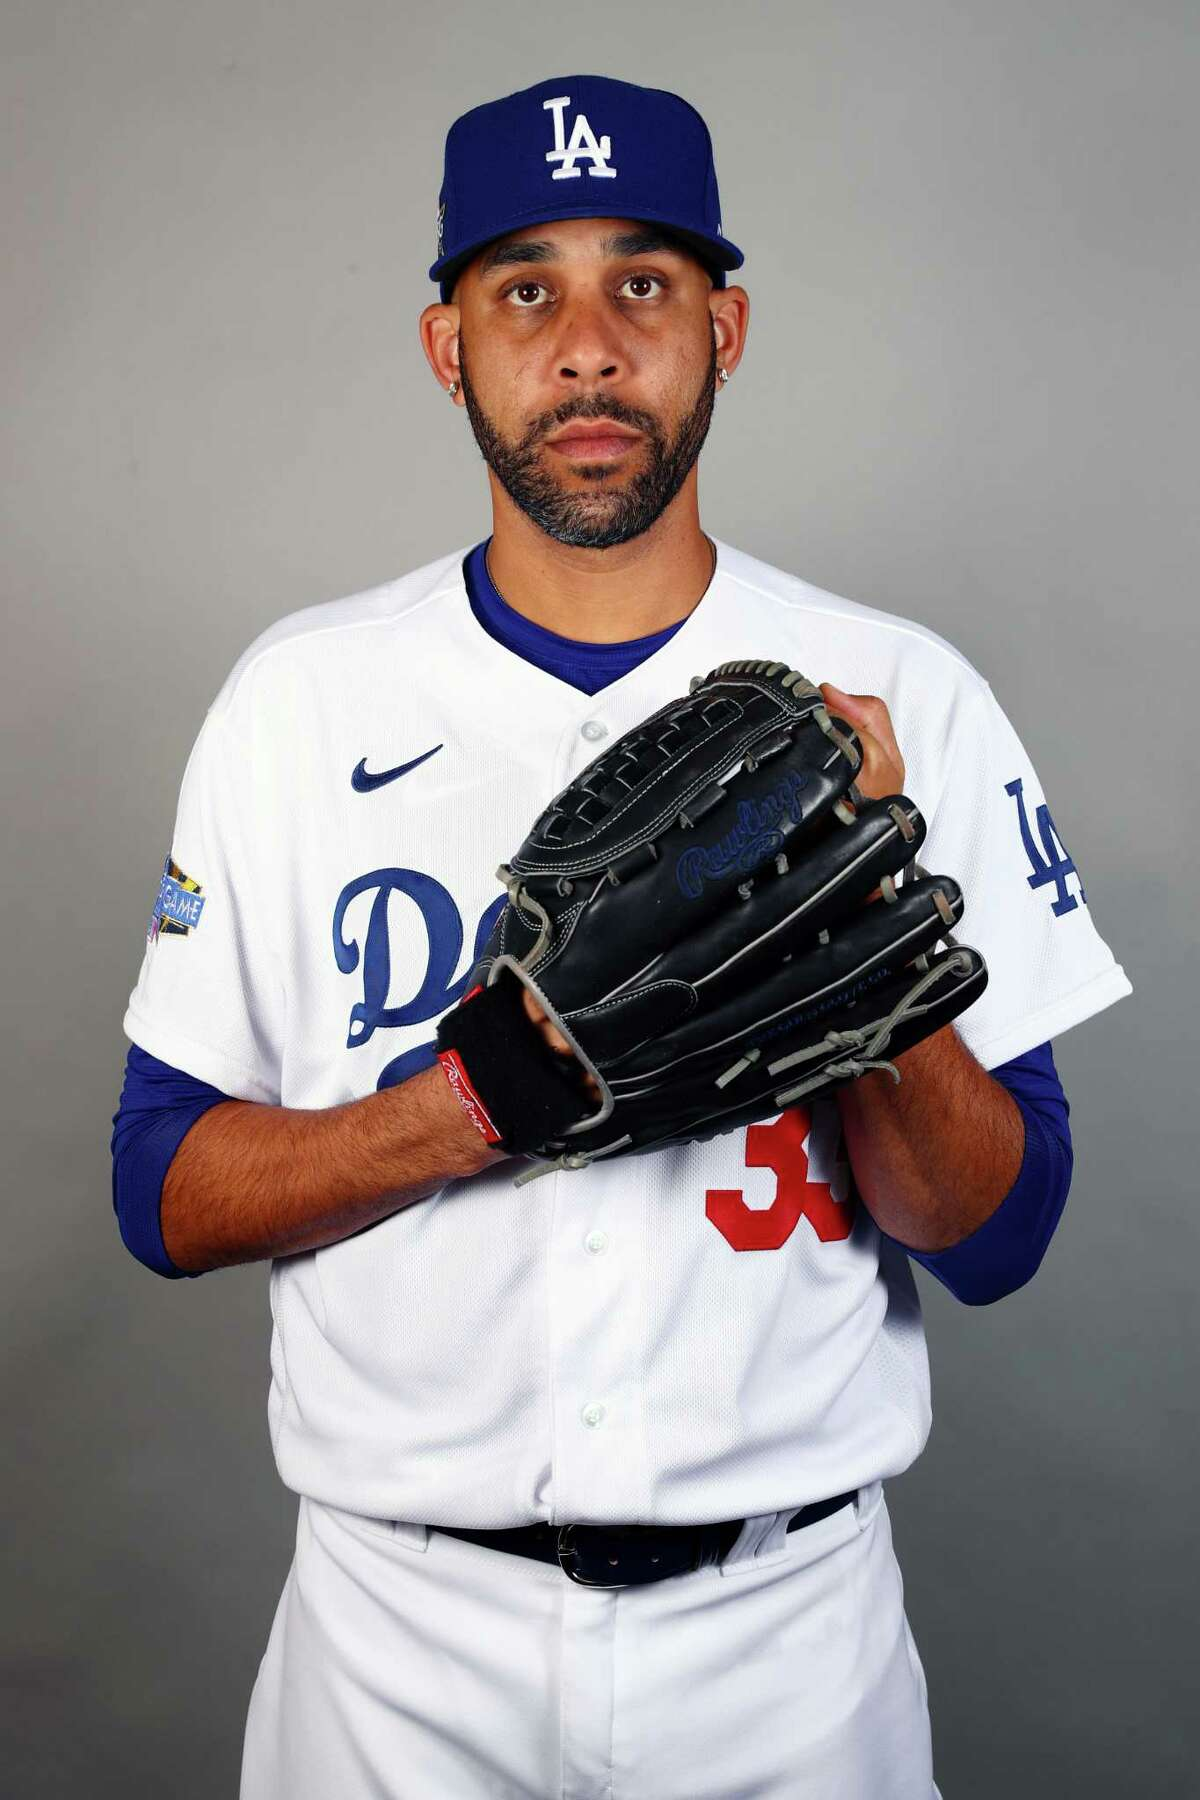 GLENDALE, AZ - FEBRUARY 20: David Price #33 of the Los Angeles Dodgers poses during Photo Day on Thursday, February 20, 2020 at Camelback Ranch in Glendale, Arizona. (Photo by Adam Glanzman/MLB Photos via Getty Images)